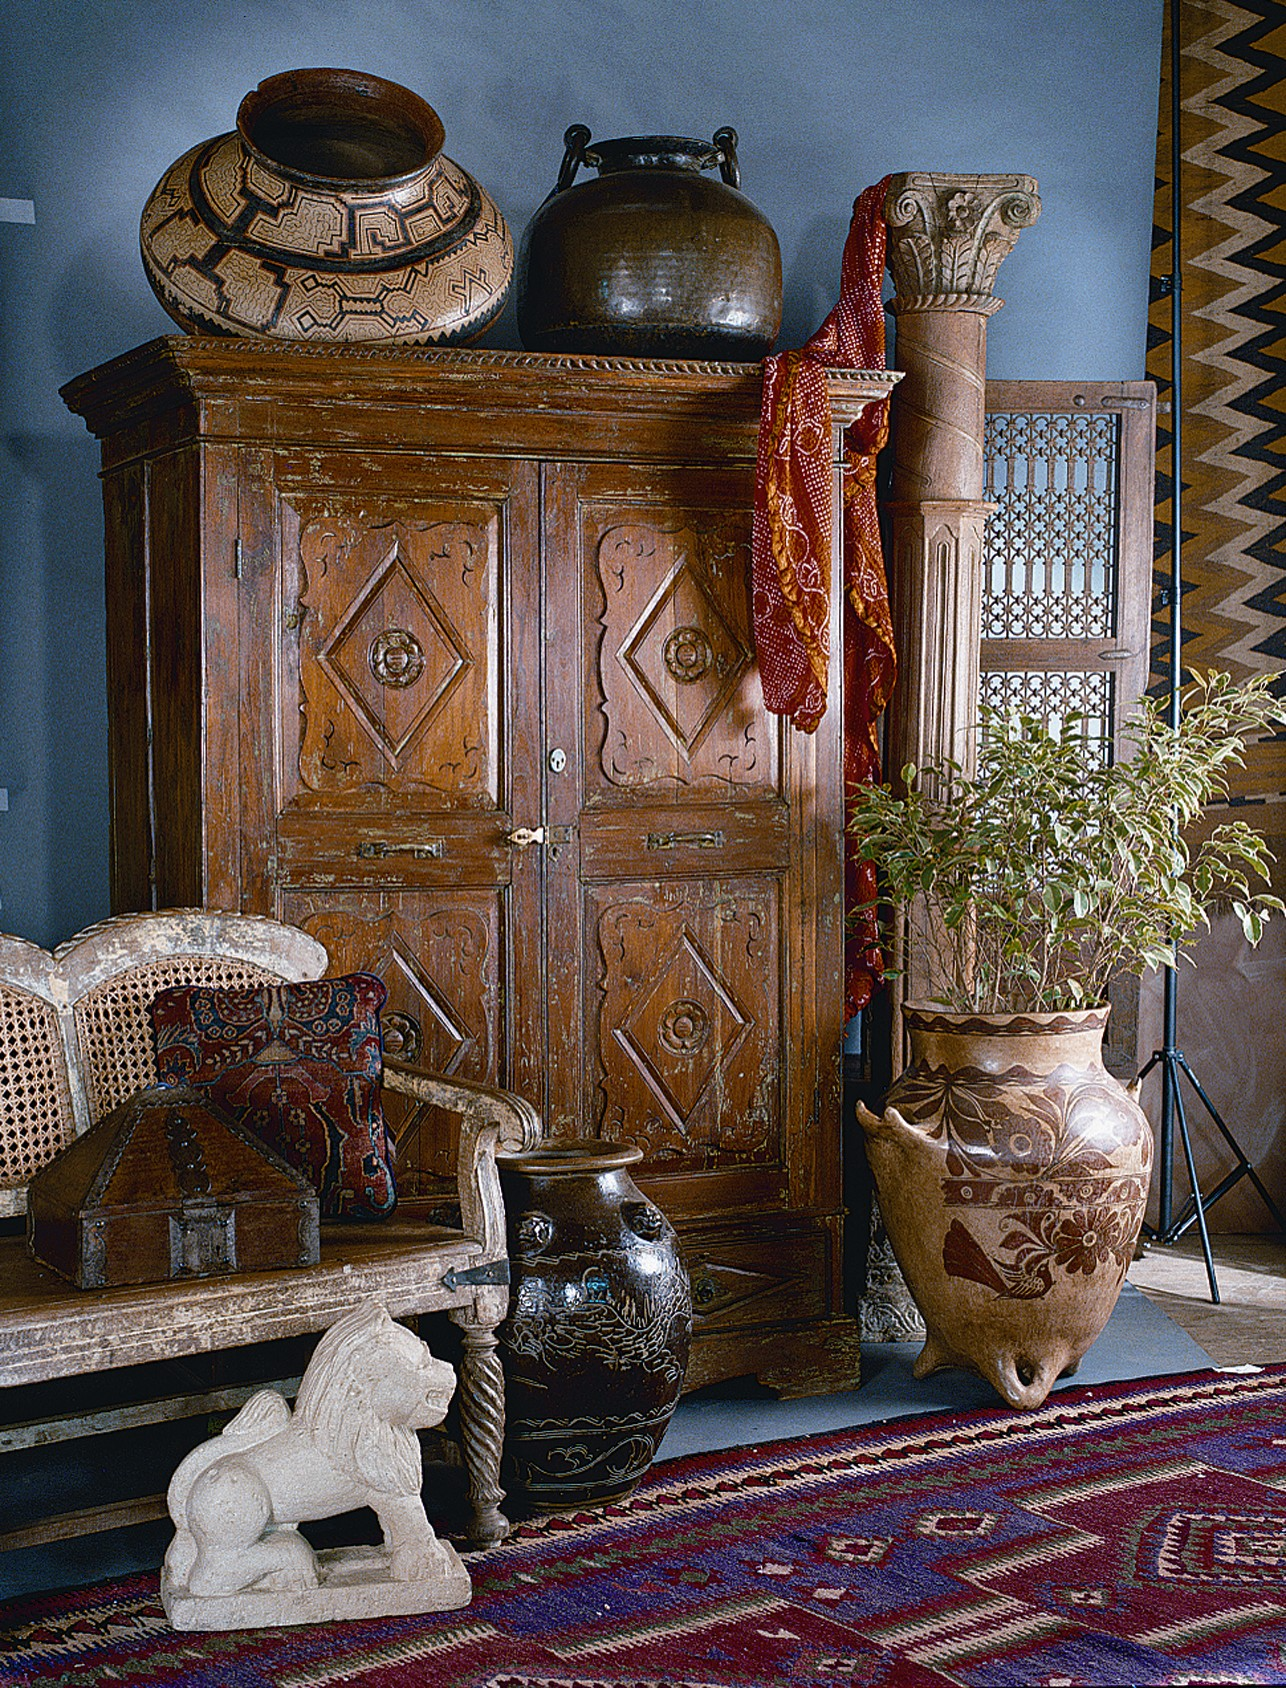 Colonial Style Imports, Tucson Arizona - Antique Furniture, Architectural Elements, Folk Art: Colonial